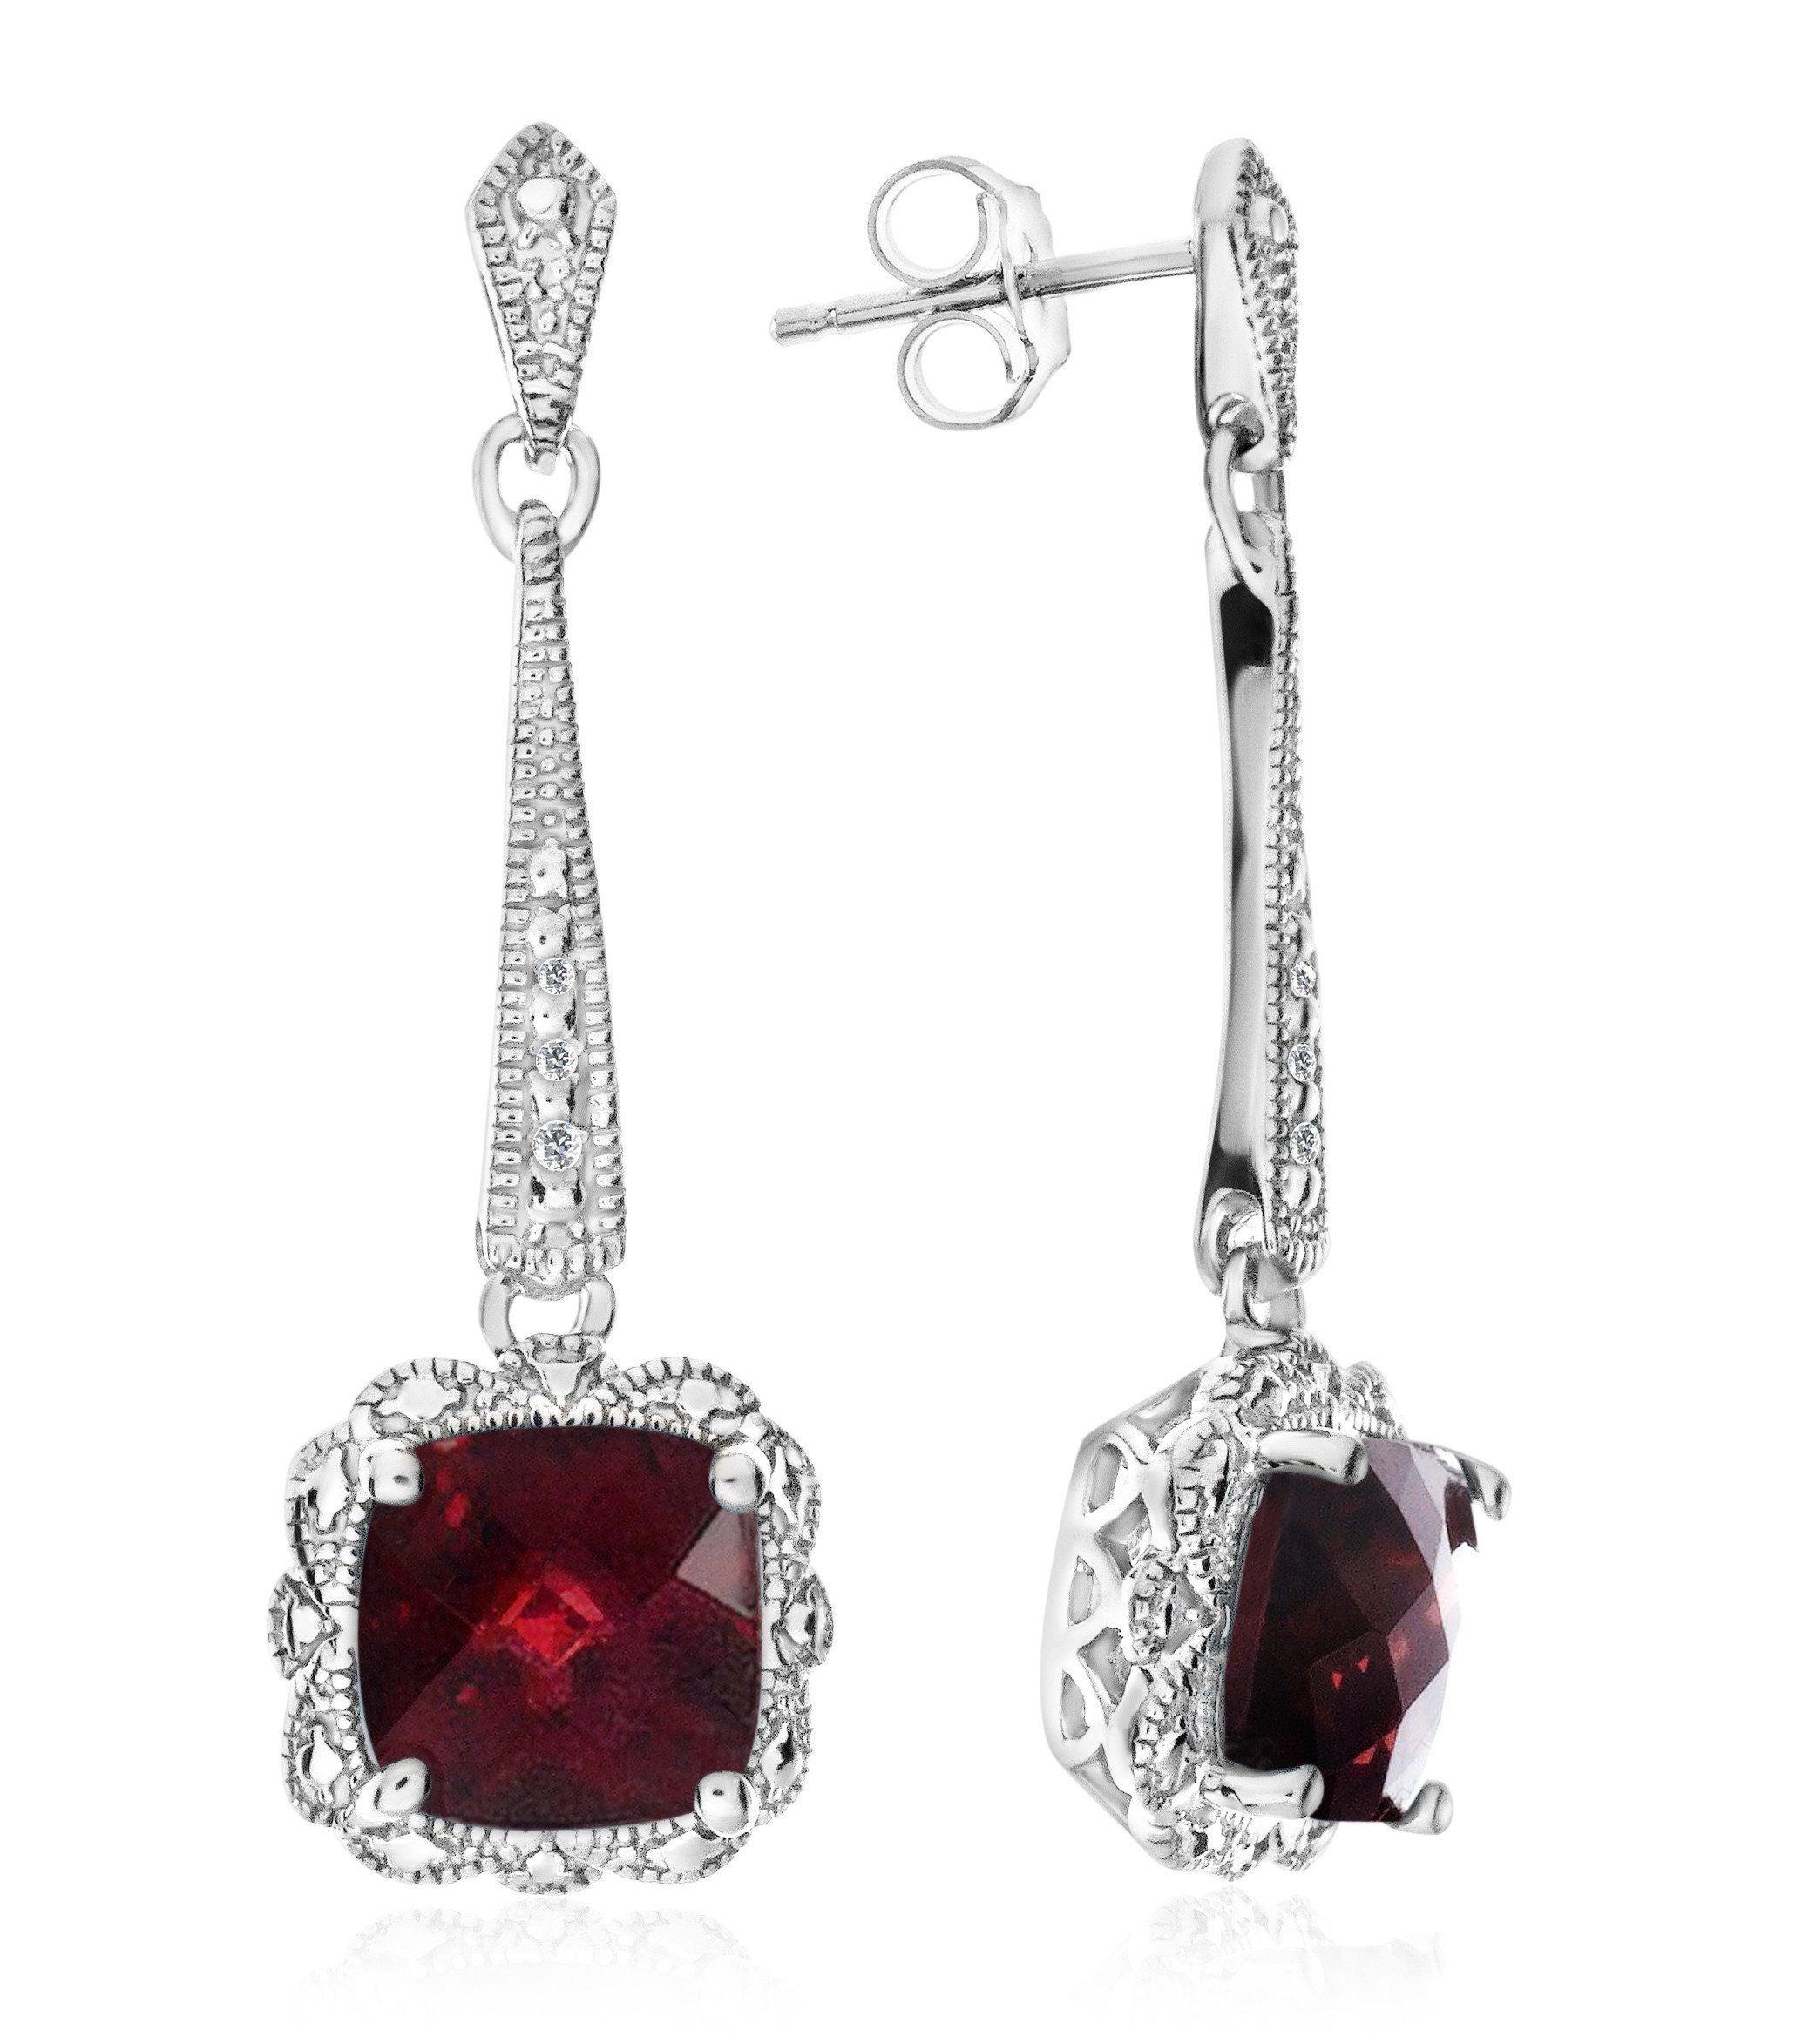 2.40 Carat Garnet Dangle Earrings with Diamond Accents in Sterling Silver